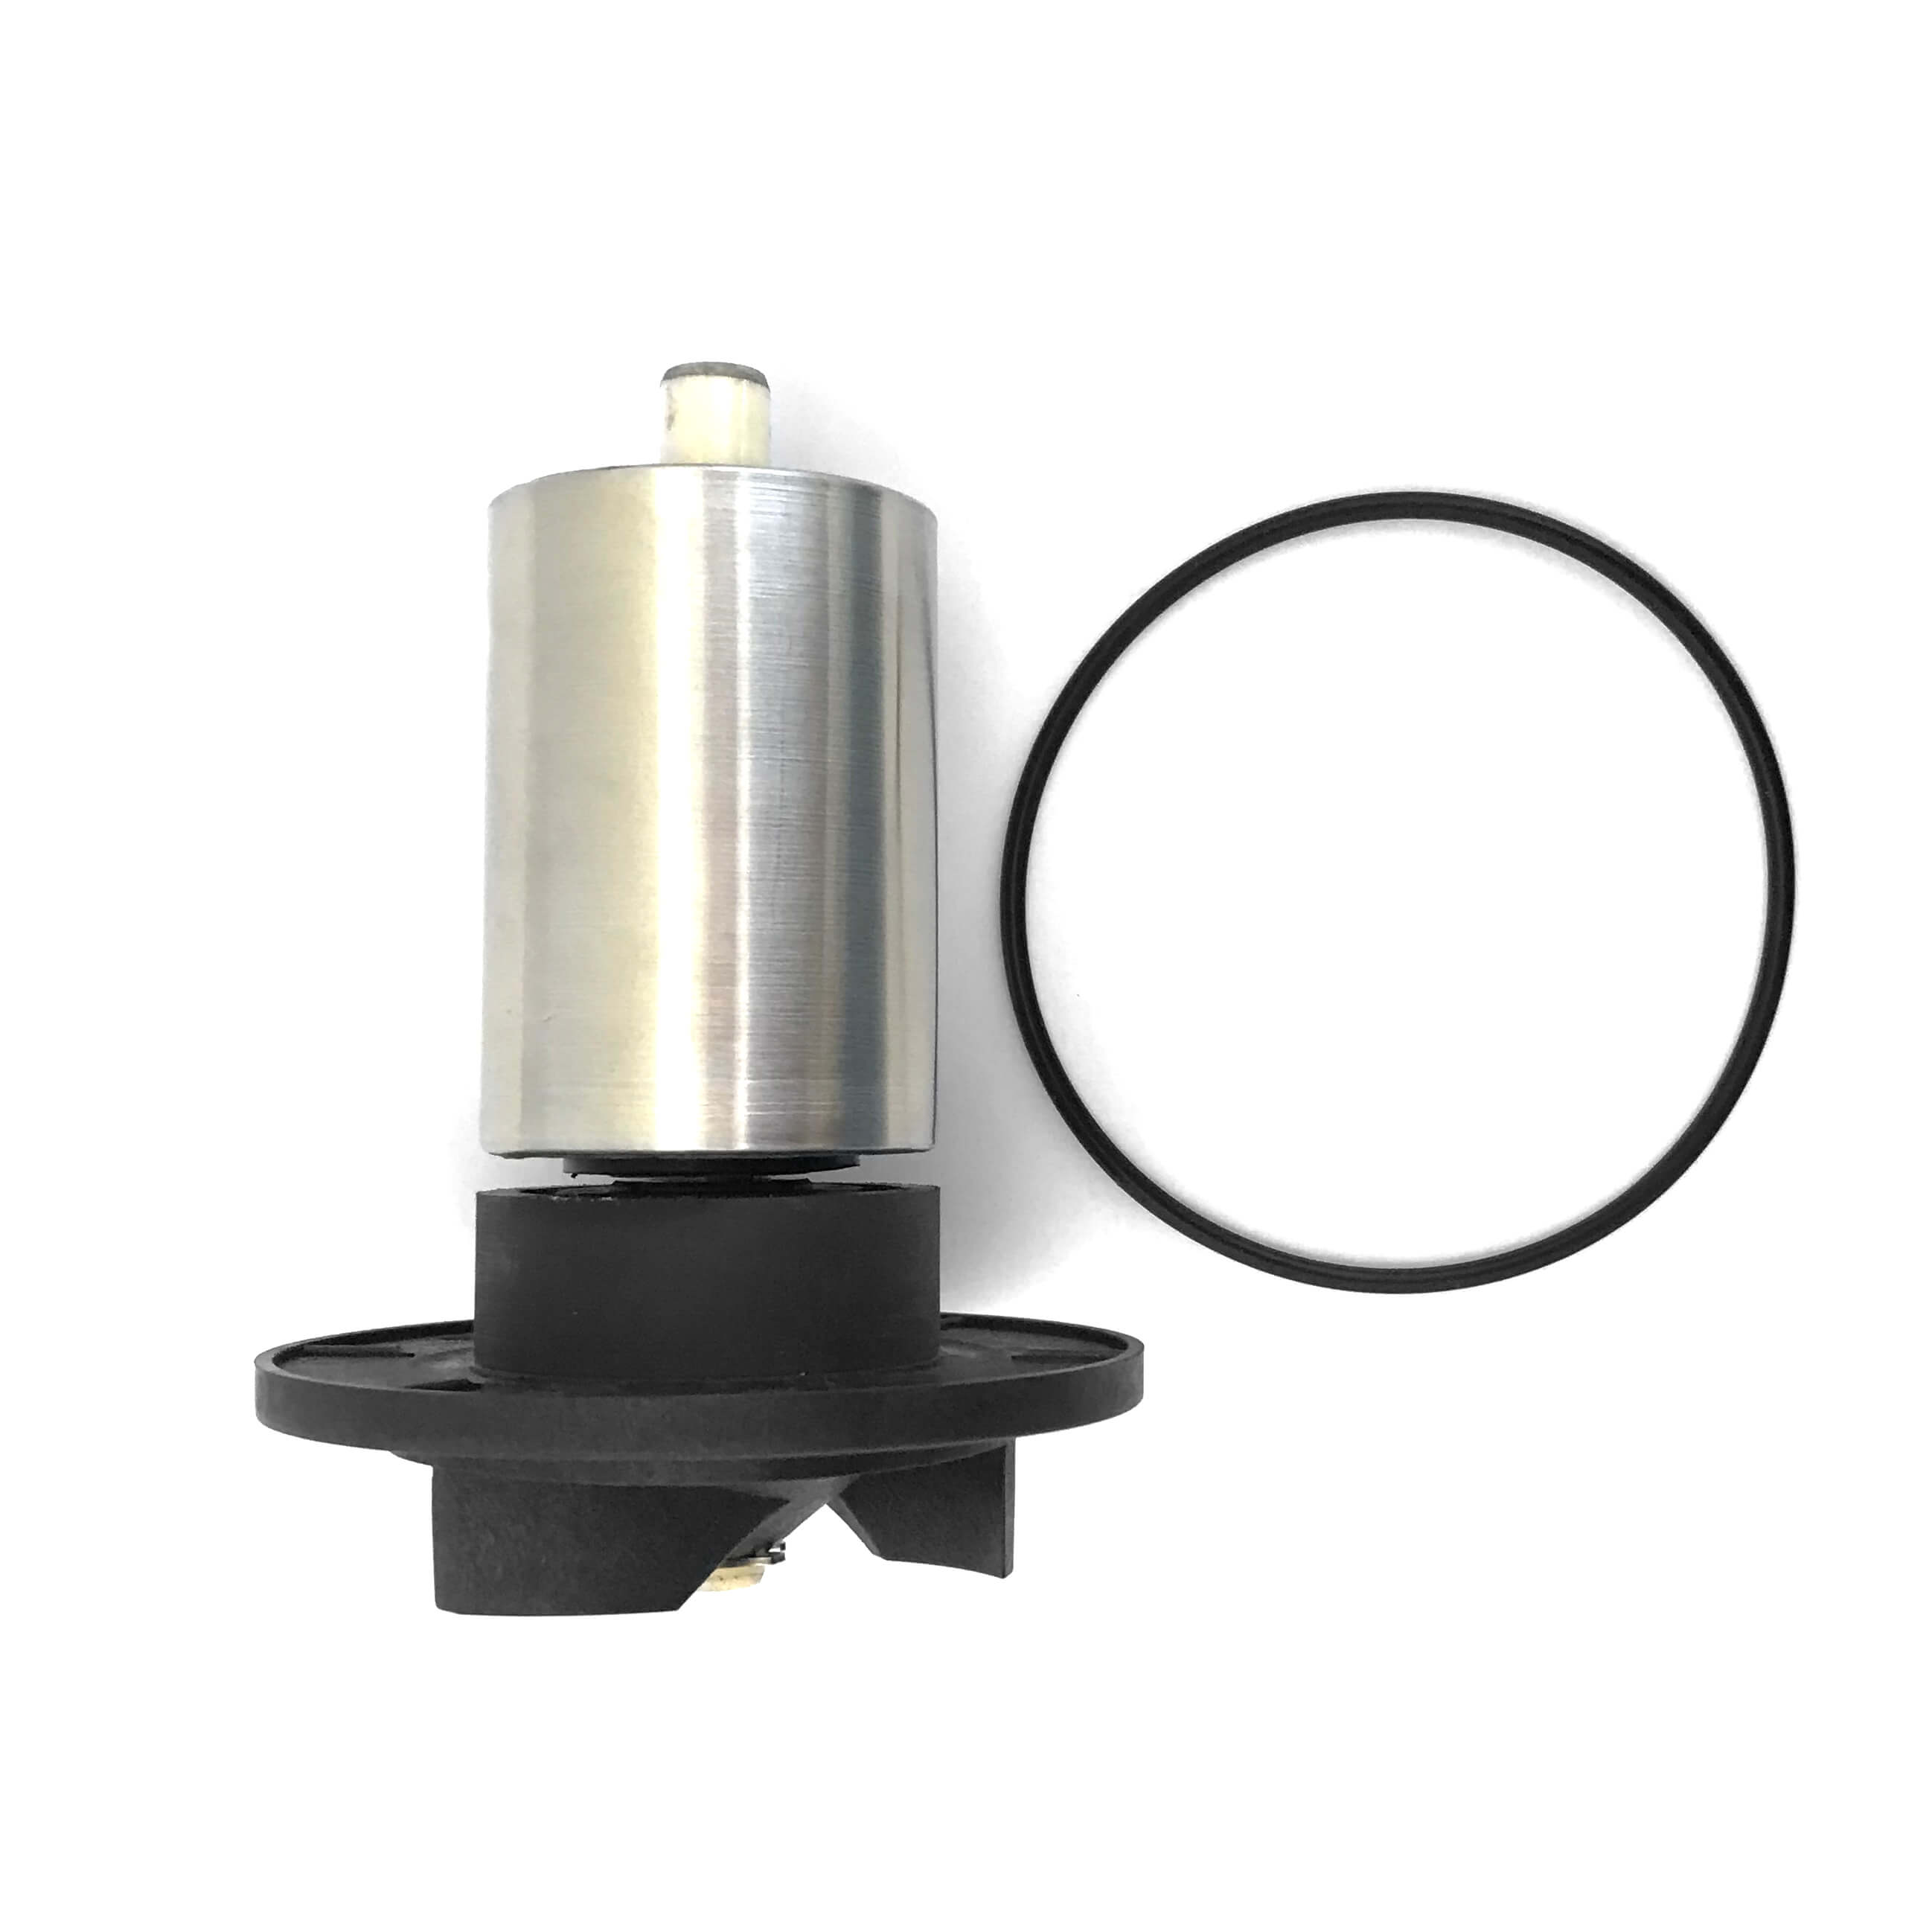 Replacement Rotor for HY-Drive 6000 only (MPN 12765)